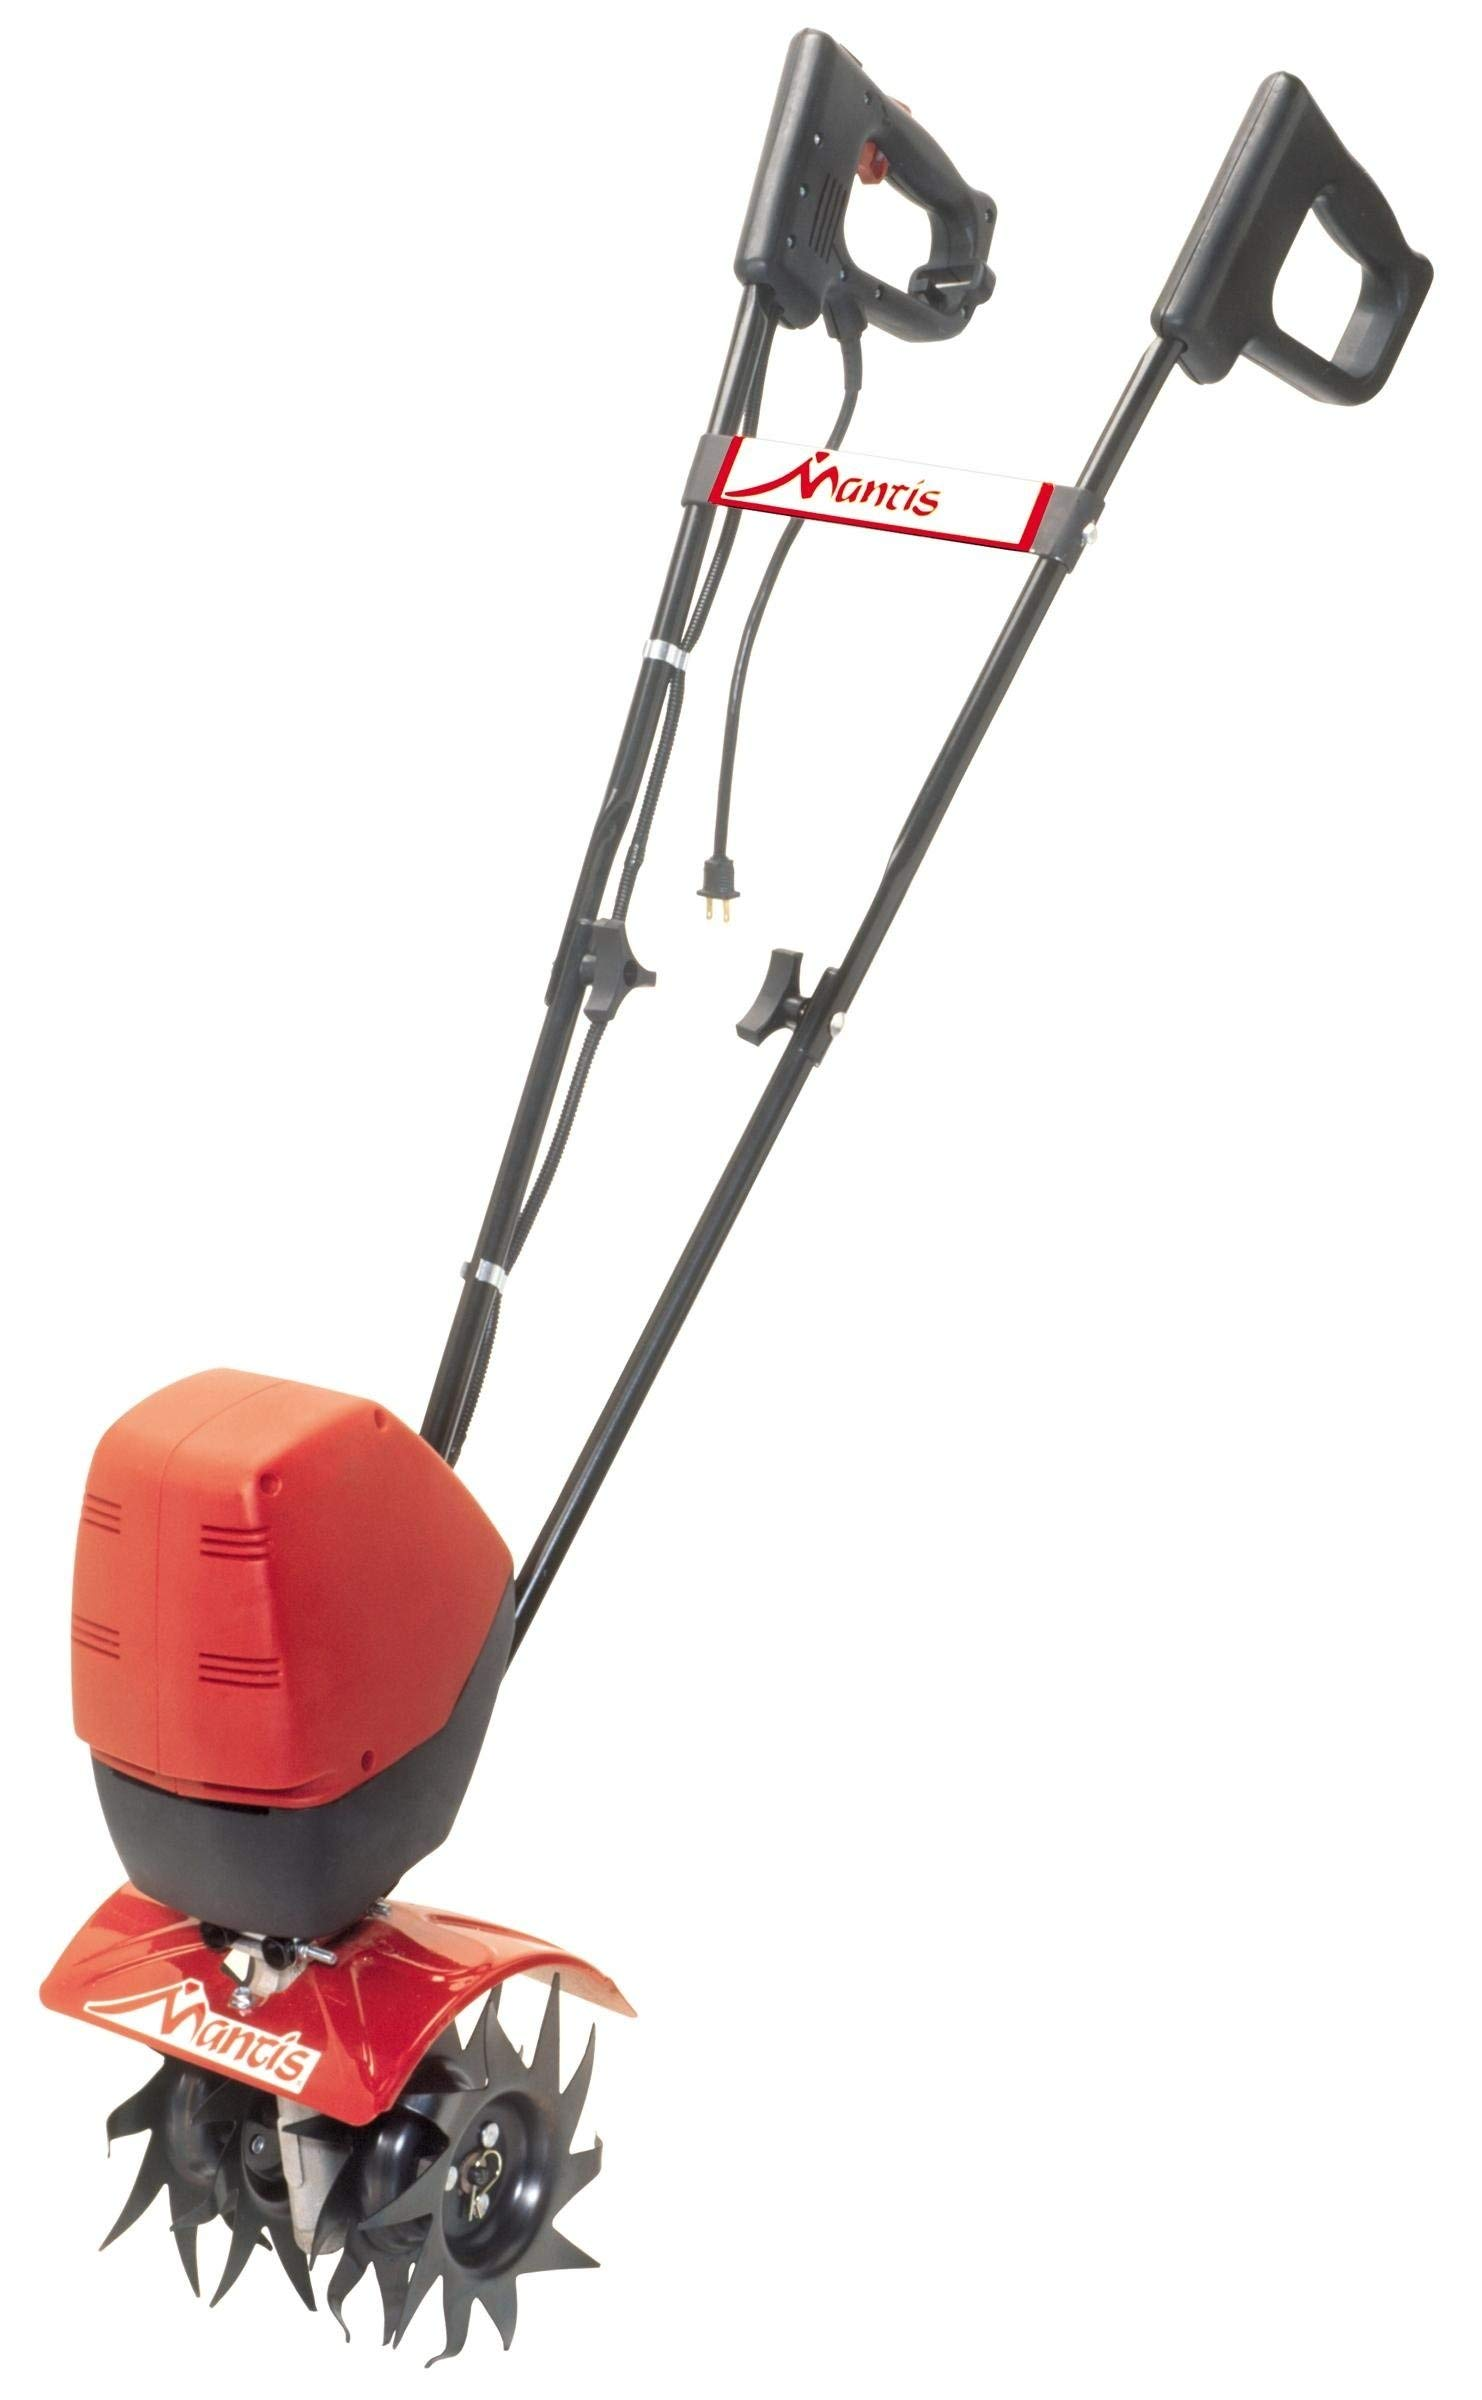 Mantis 7250-00-03 Electric Tiller (Renewed)